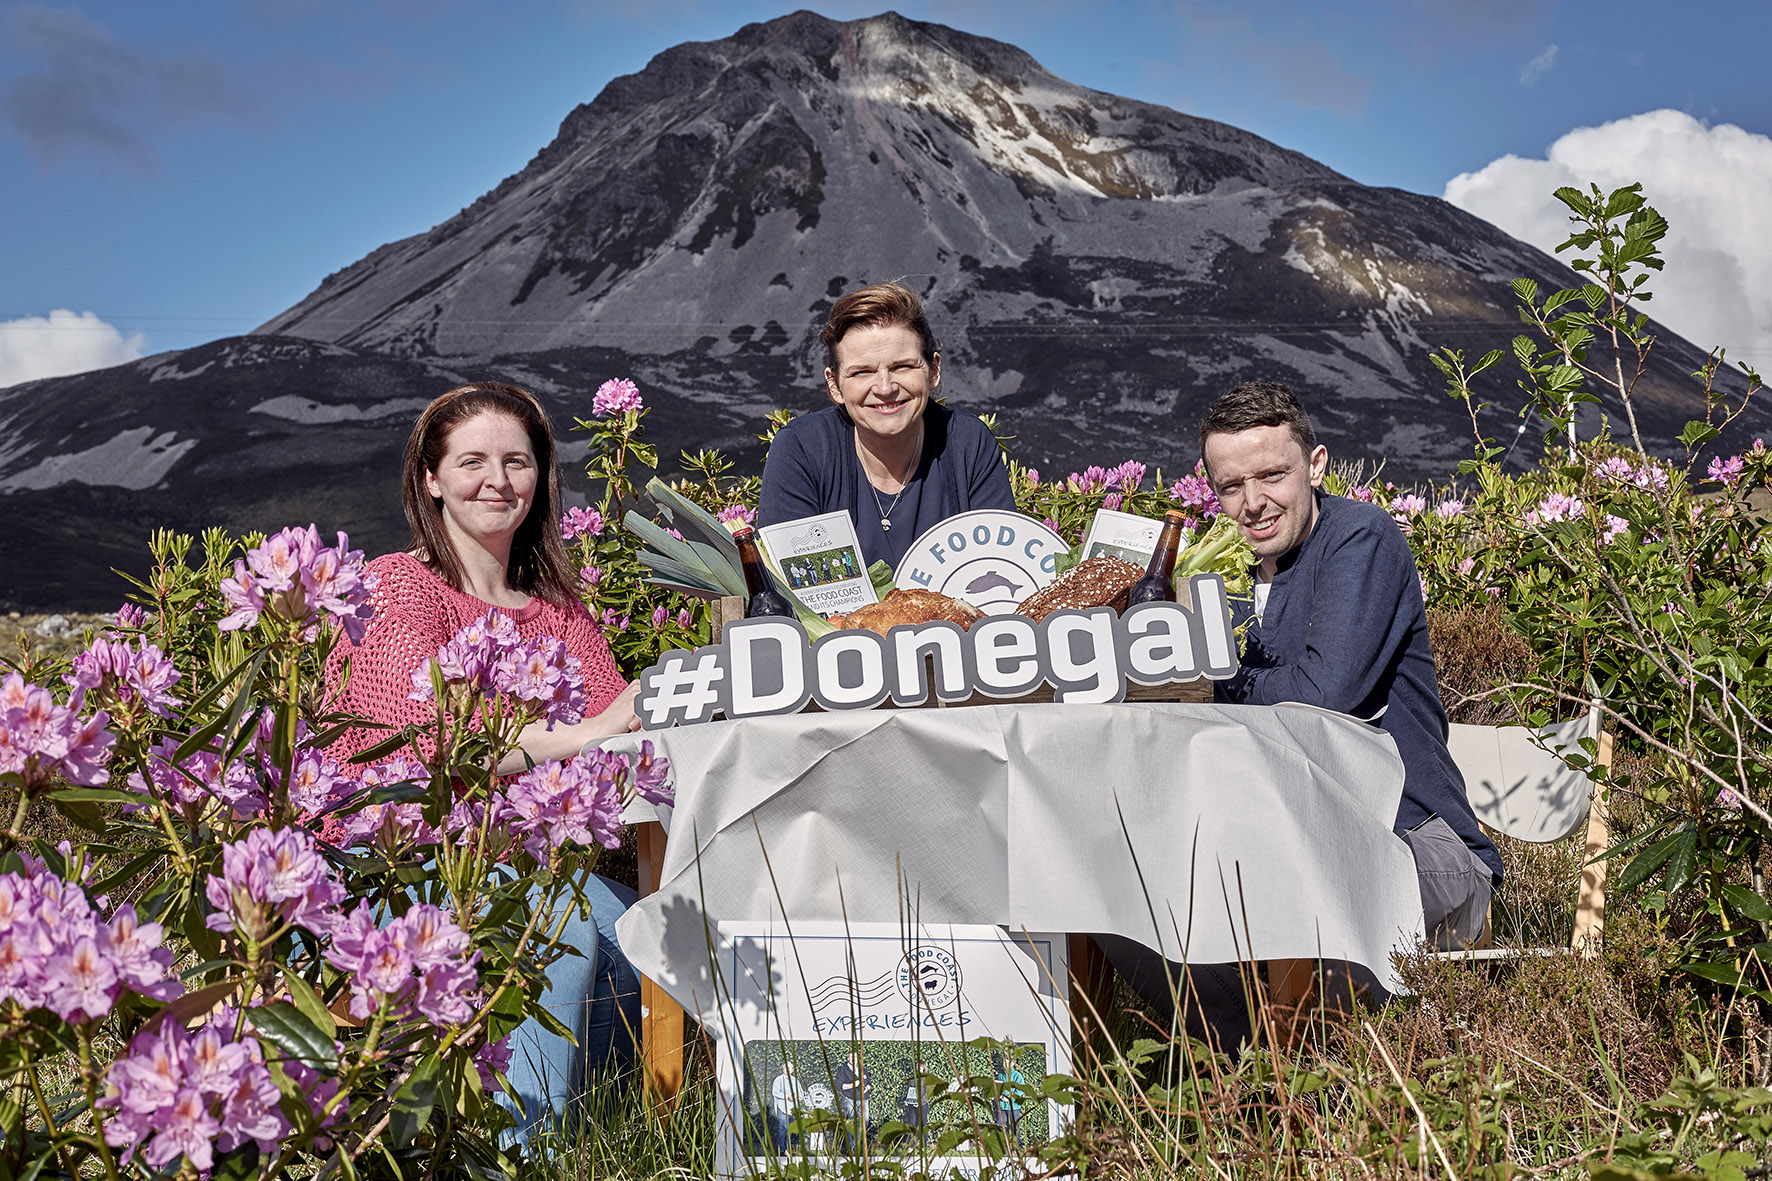 A Donegal Feast at the foot of Errigal